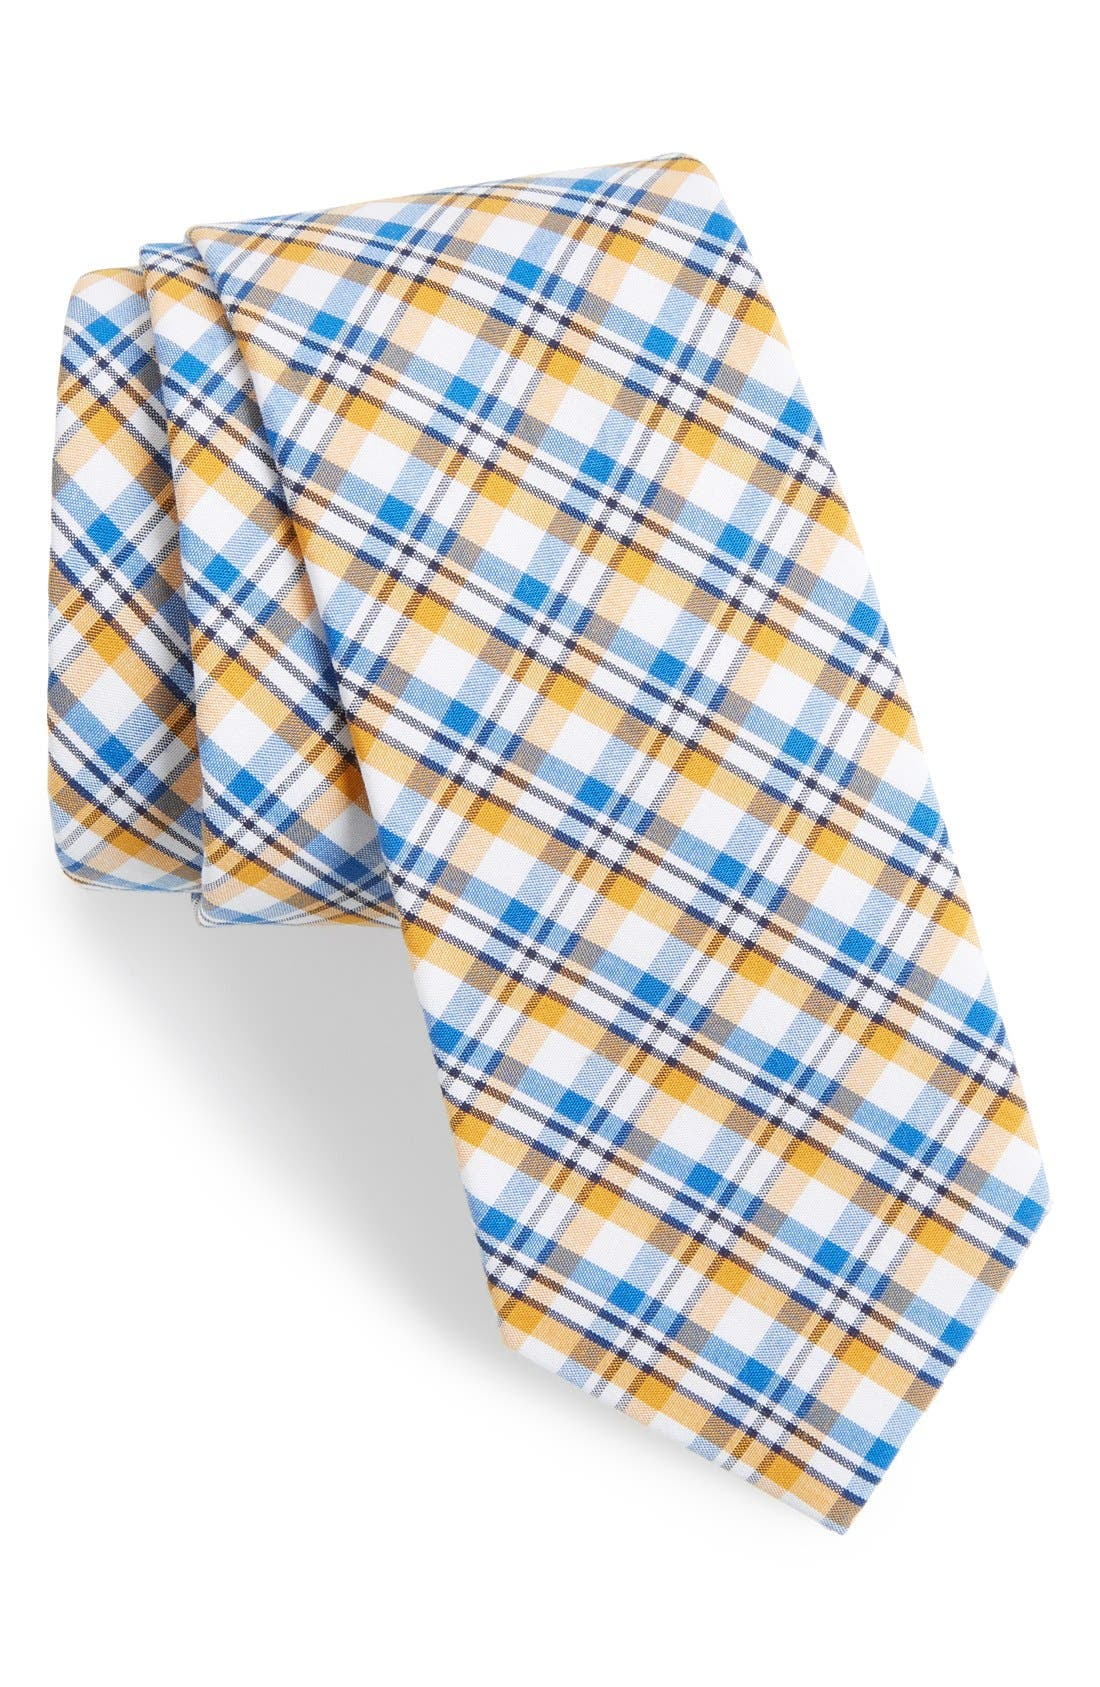 'Boomer' Plaid Cotton Tie,                         Main,                         color, Yellow